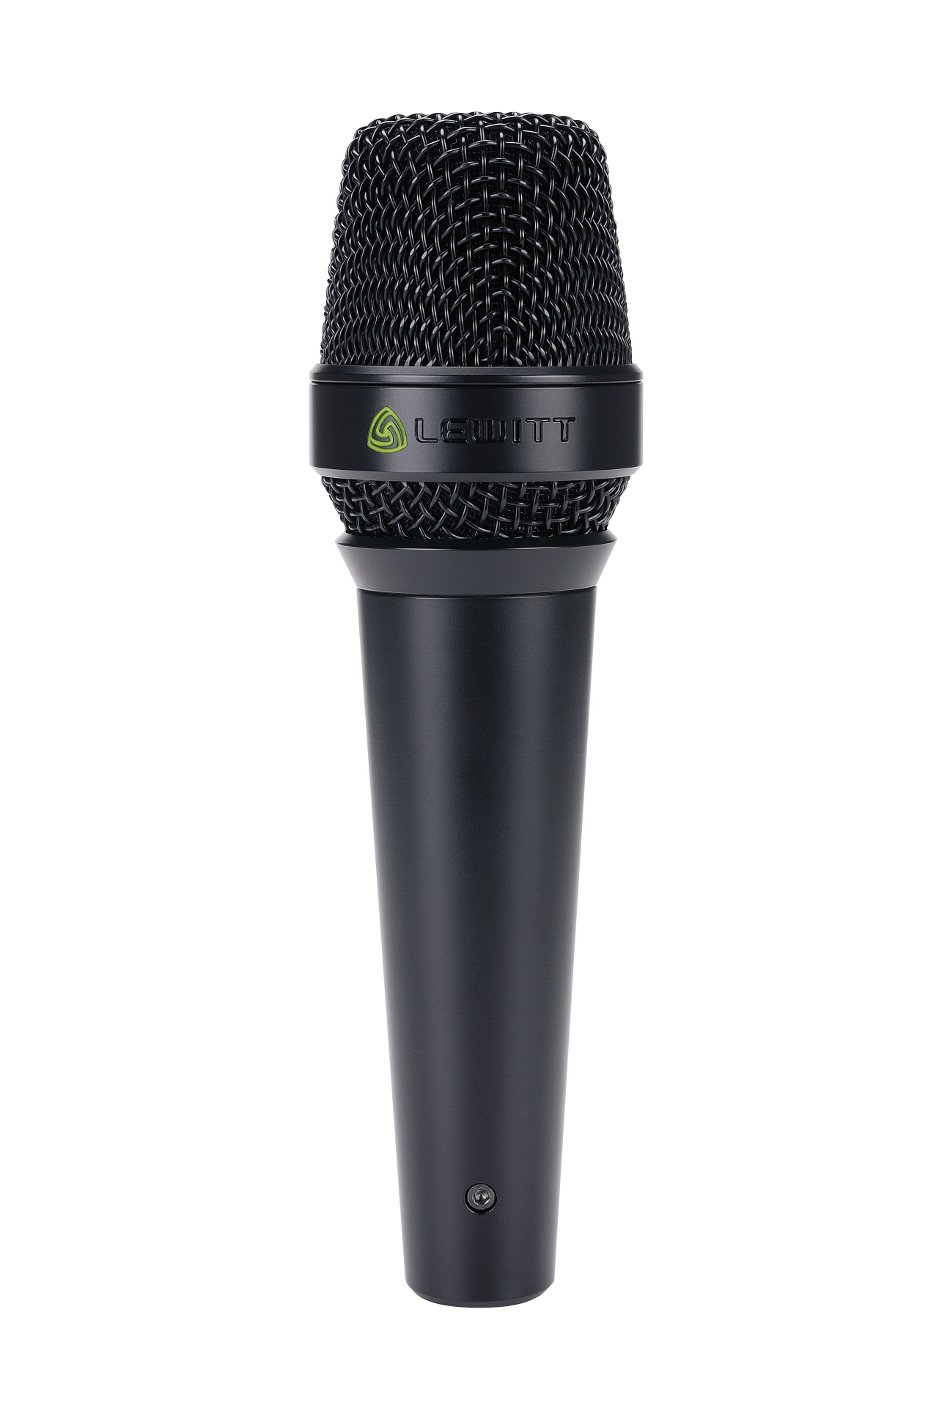 Lewitt MTP 940 CM Handheld Condenser Vocal Microphone for Stage & Studio AMS-MTP-940-CM